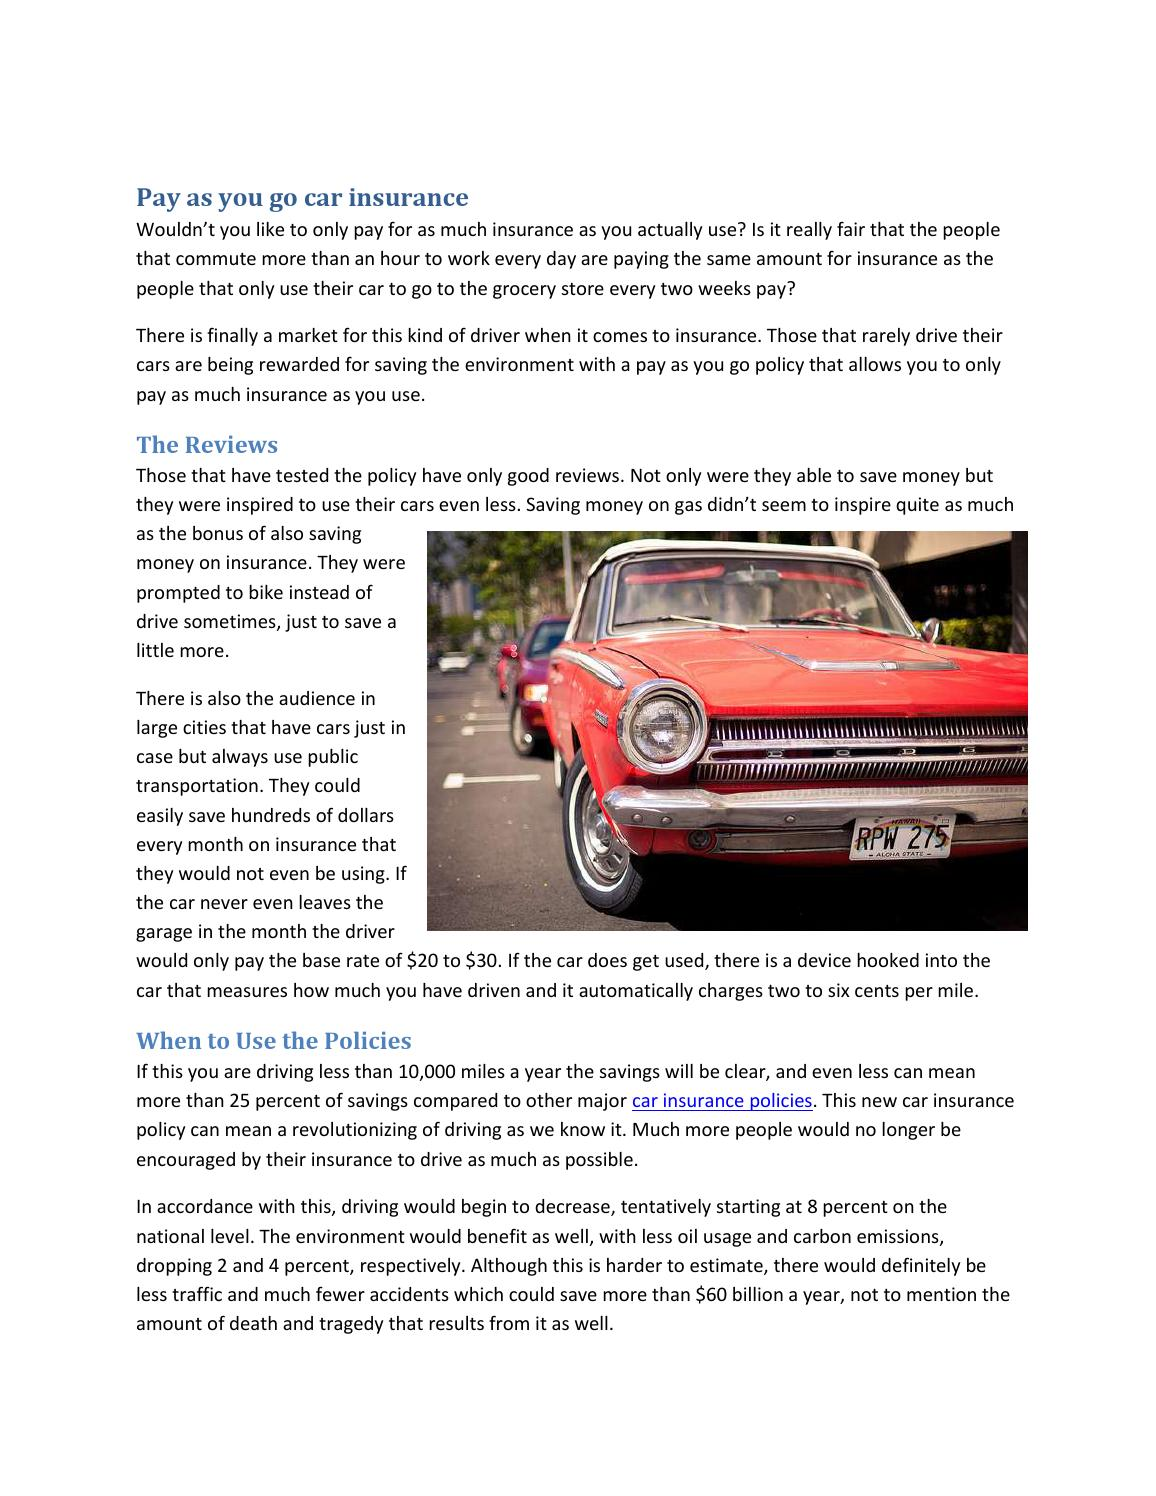 Pay As You Go Car Insurance By Seth Jenkins Issuu